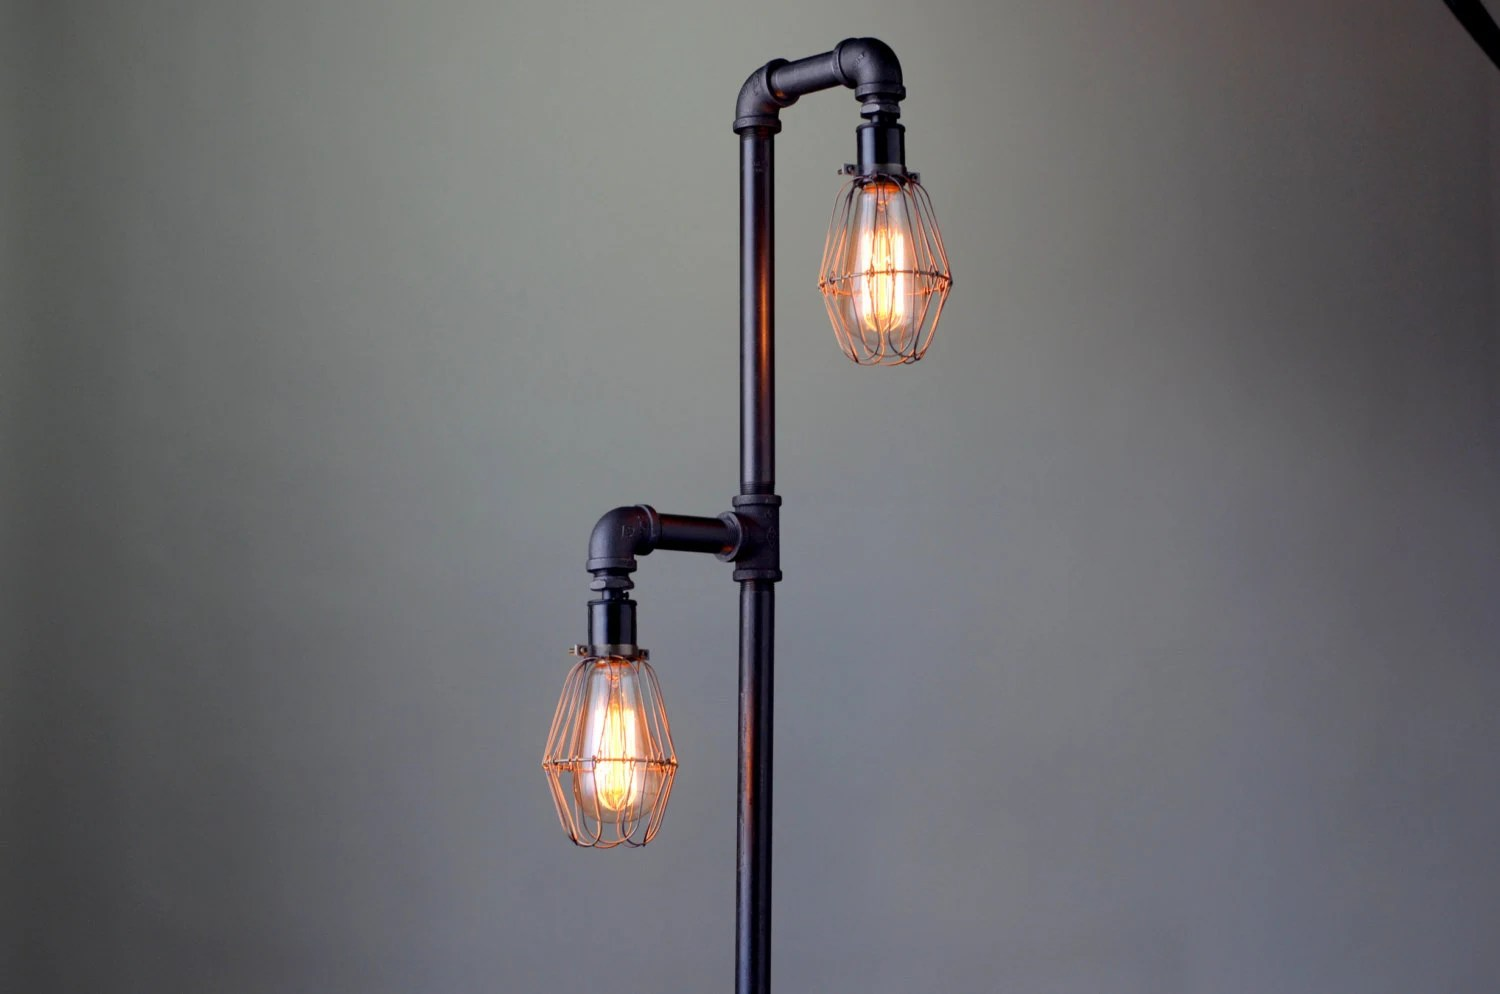 Cheap Stand Up Lamps Pipe Floor Lamp Industrial Floor Lamp Edison Bulb